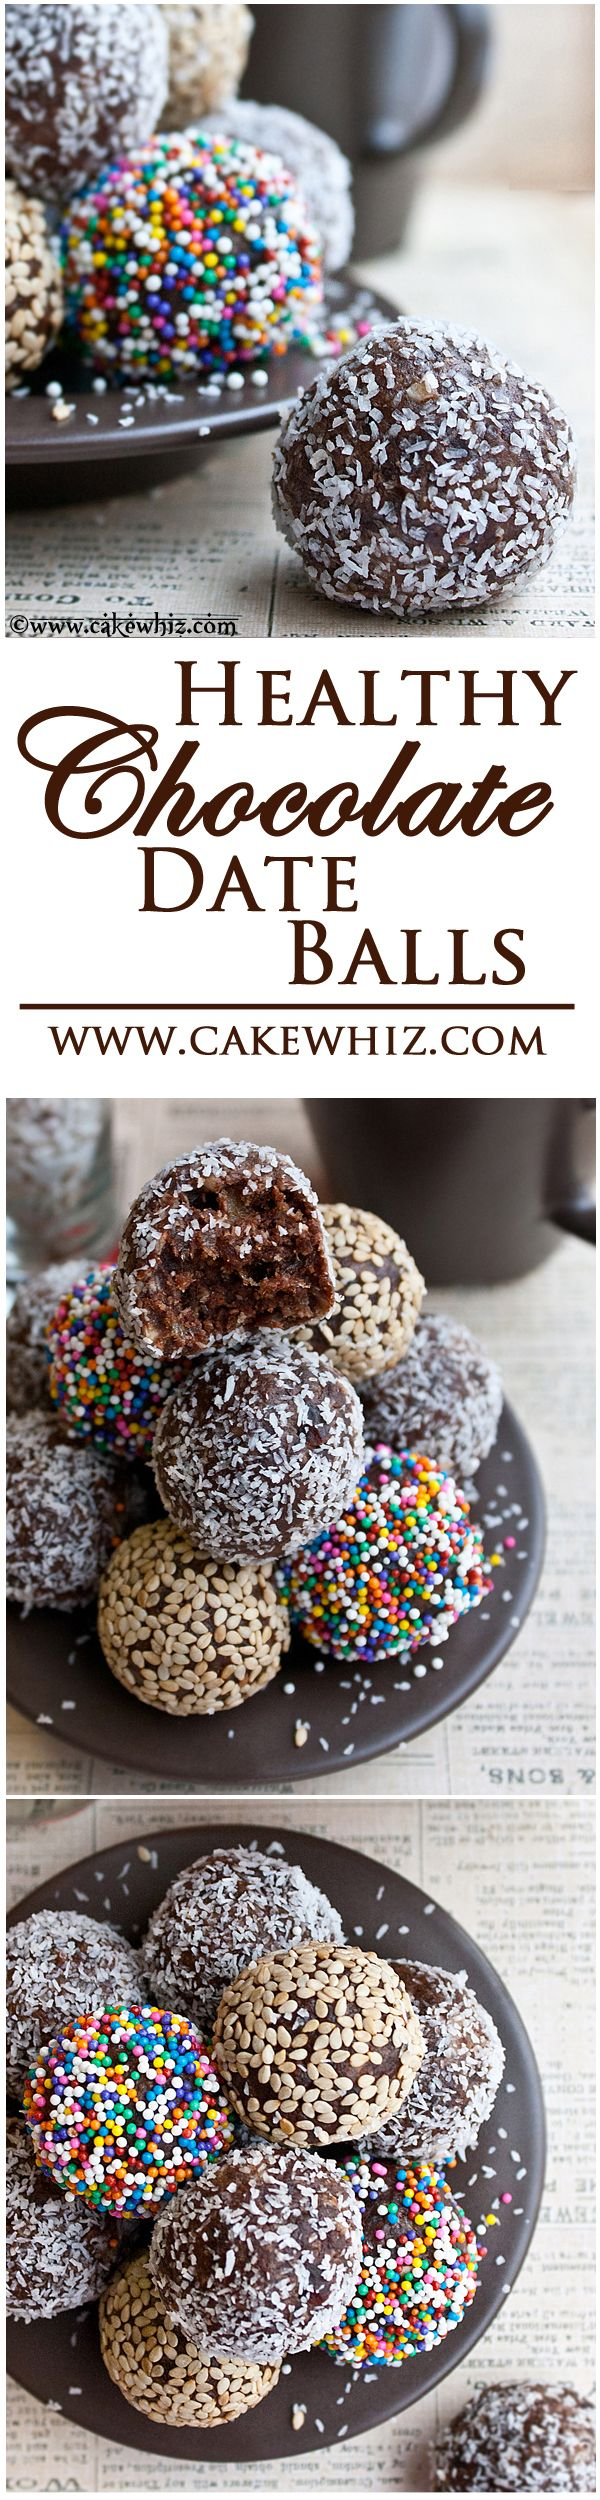 FUDGY CHOCOLATE DATE BALLS covered in sprinkles, toasted sesame seeds and shredded coconut. These bite-sized energy balls are healthy, vegan and gluten free!